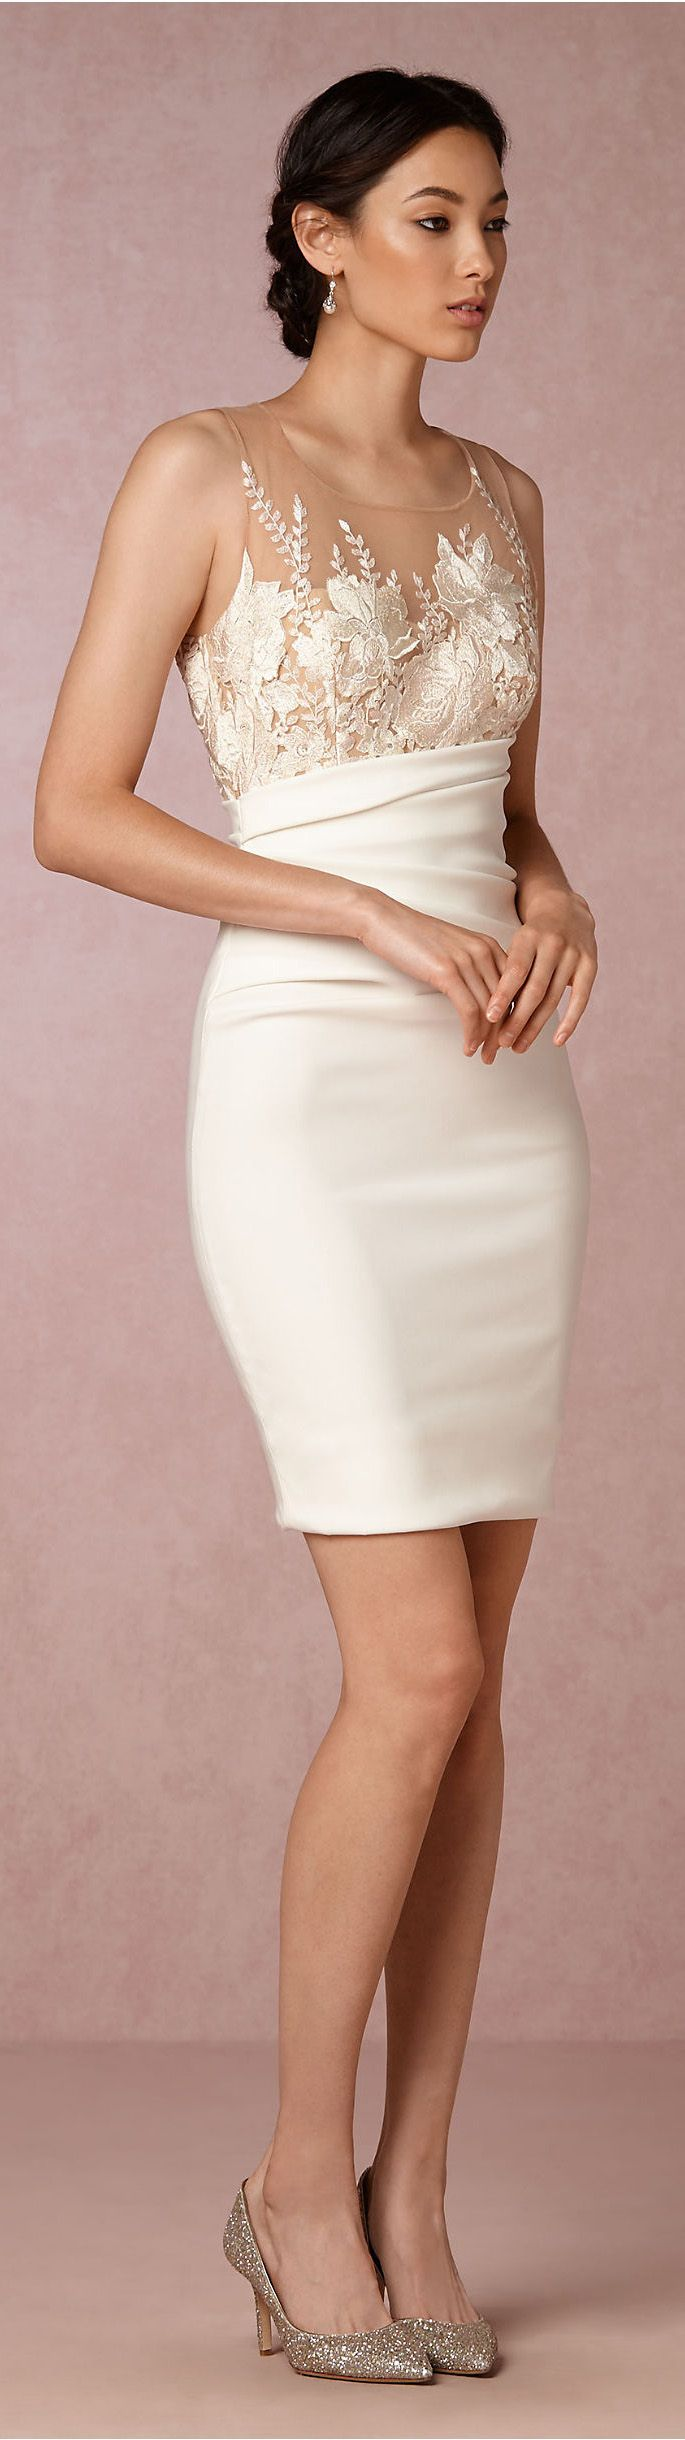 Beverly Dress in White | PARTY DRESSES | Pinterest